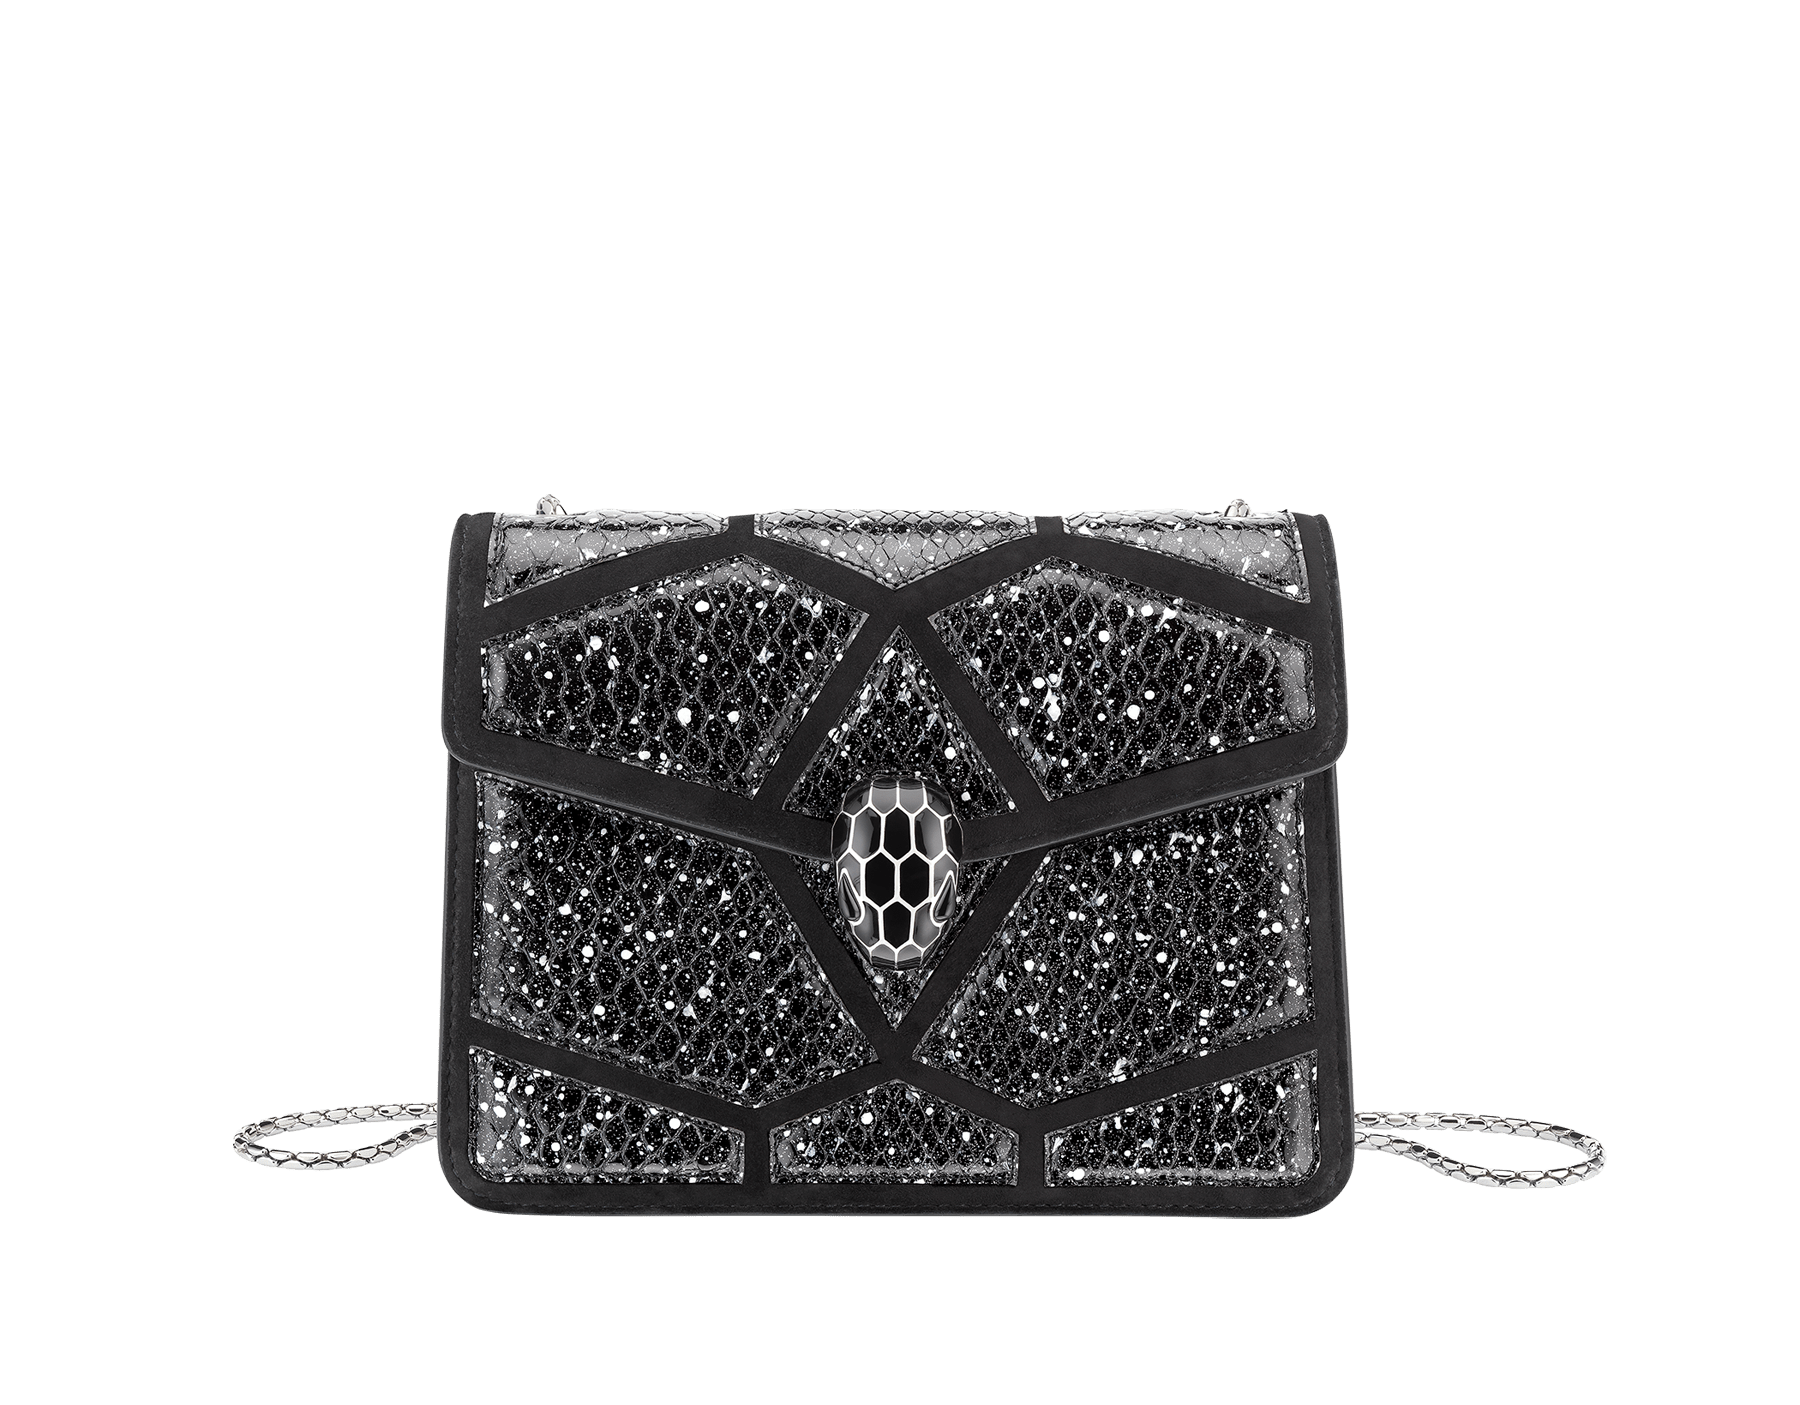 Serpenti Forever crossbody bag in black and white Stardust Cosmic python skin and black calf leather. Snakehead closure in palladium plated brass decorated with black enamel, and black onyx eyes. 288222 image 1